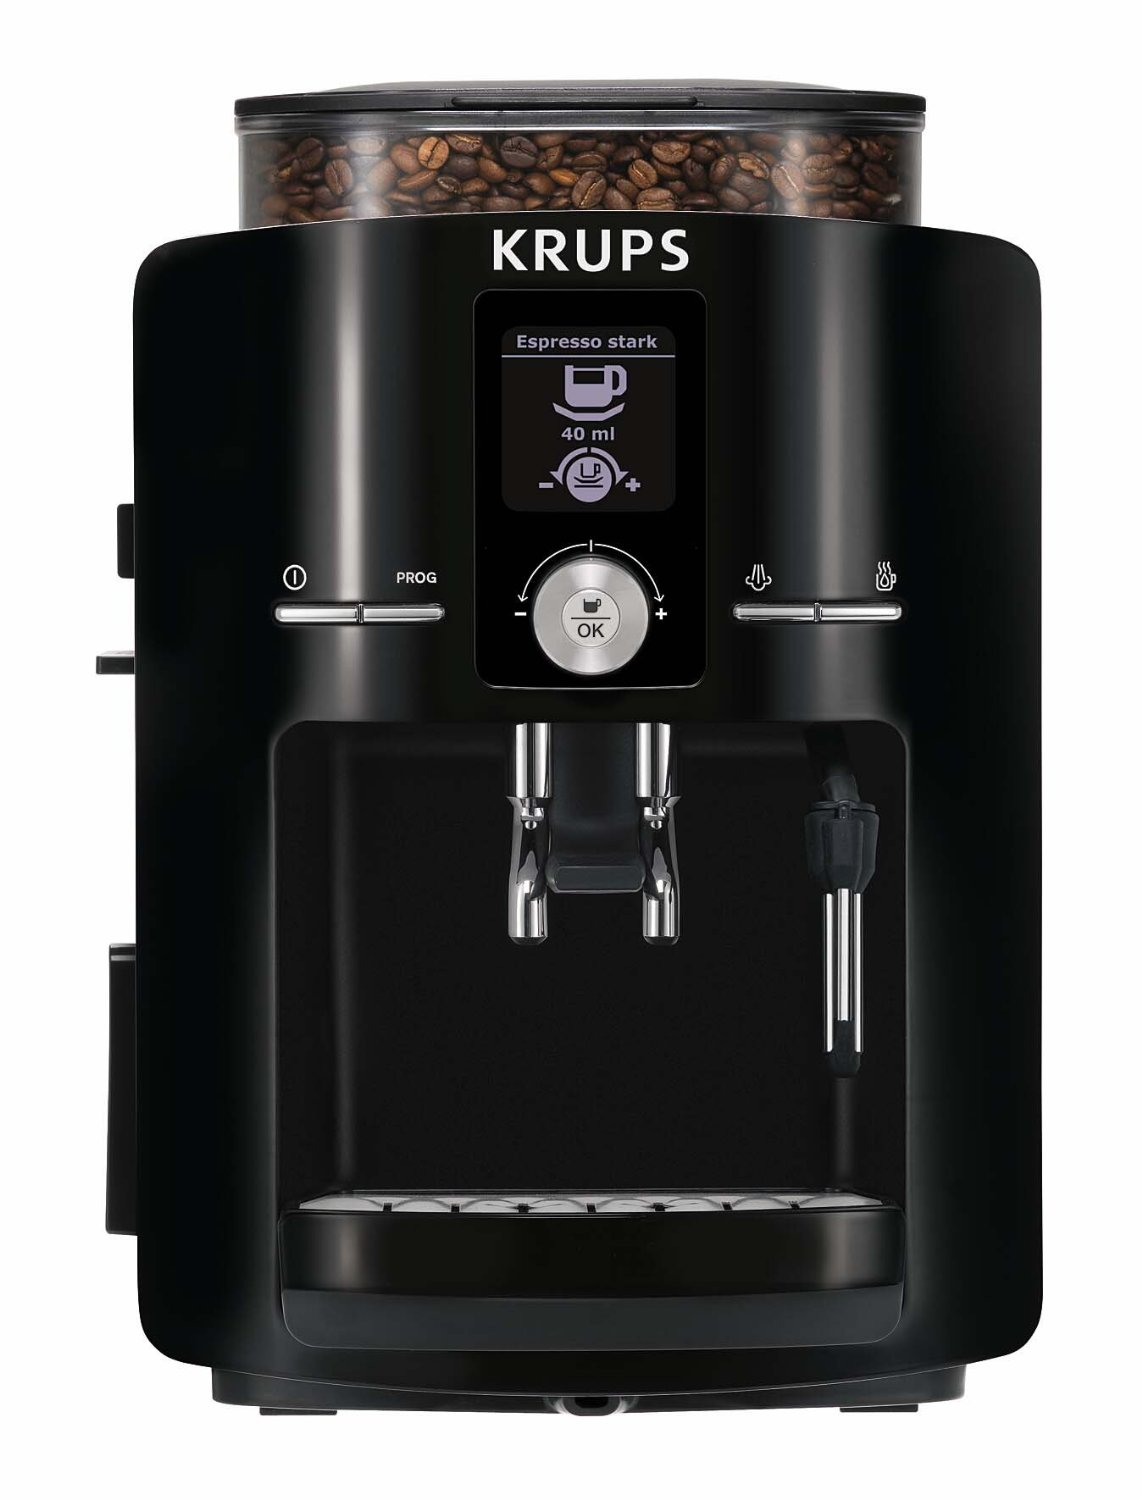 The krups espresso machine home espresso machine - Machine cafe expresso ...